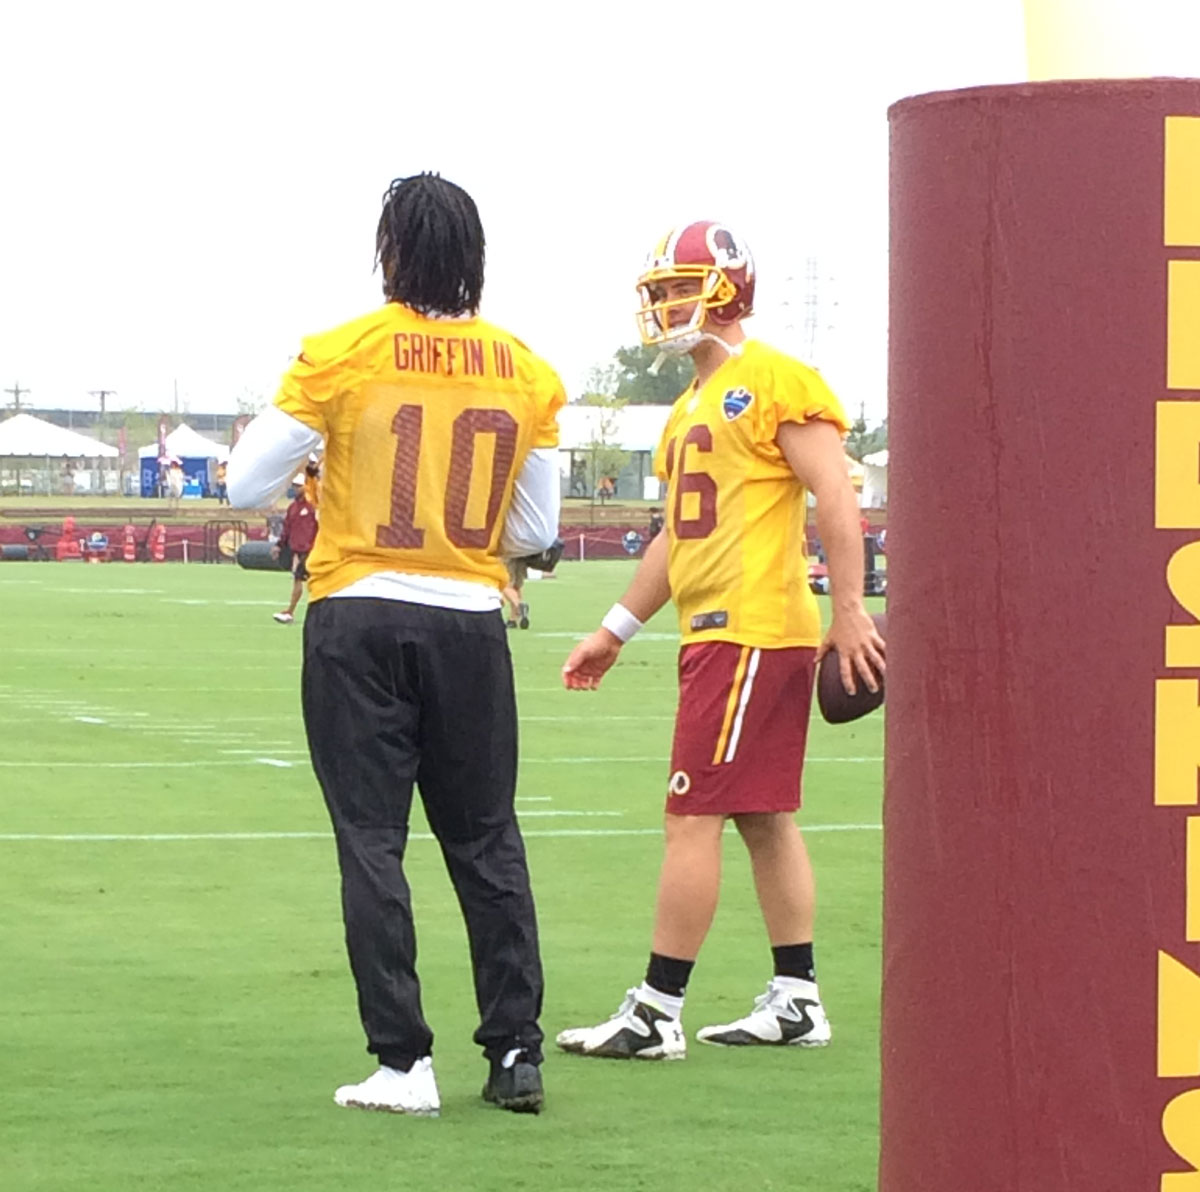 Redskins Training Camp blog: Rain wins on day 1